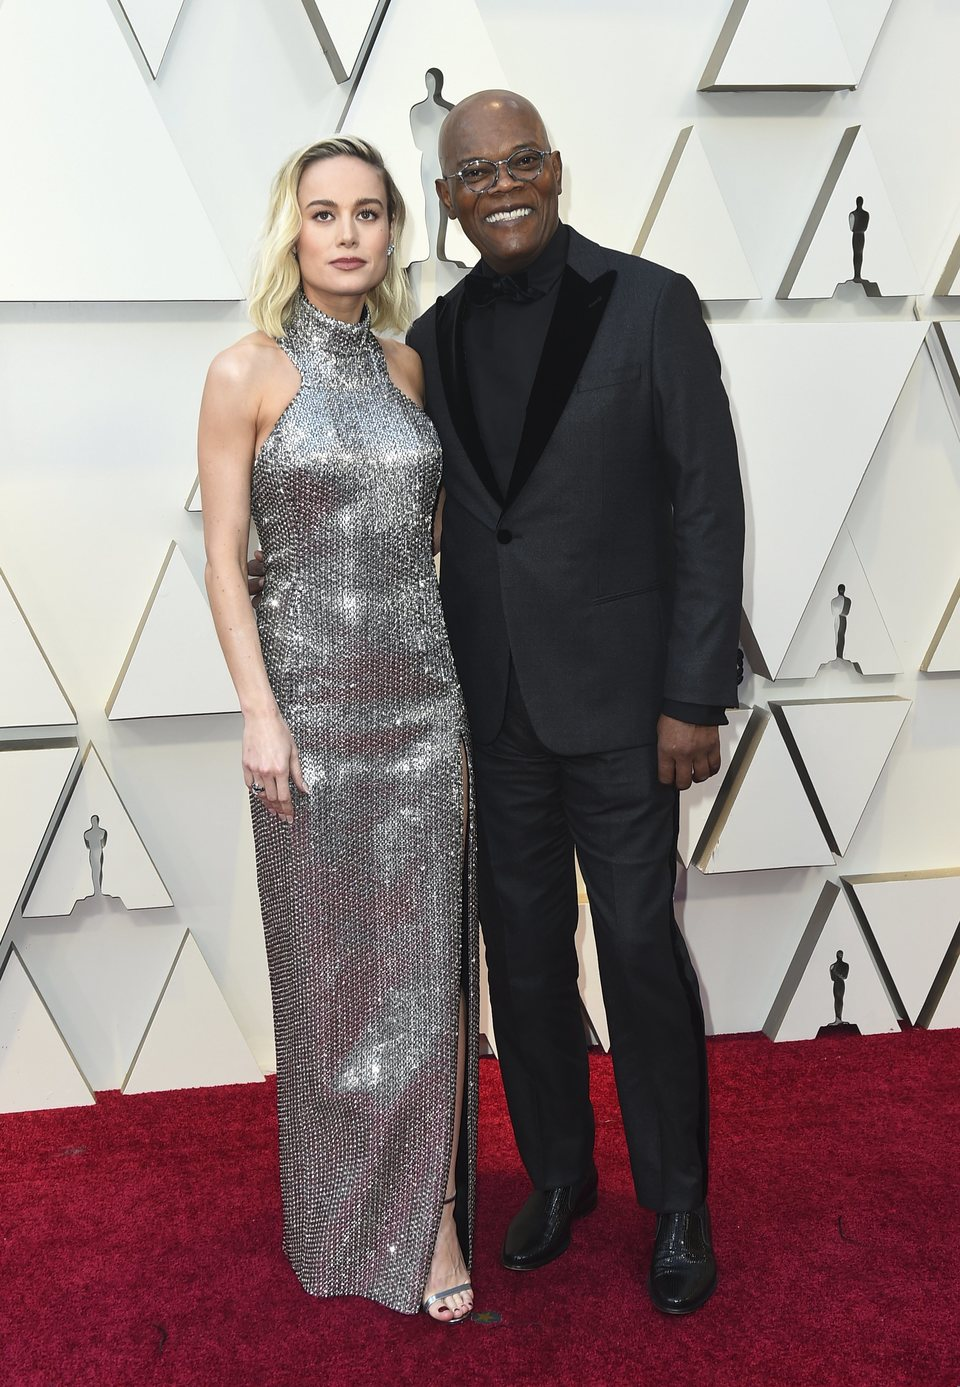 Brie Larson and Samuel L. Jackson at the Oscars 2019 red carpet